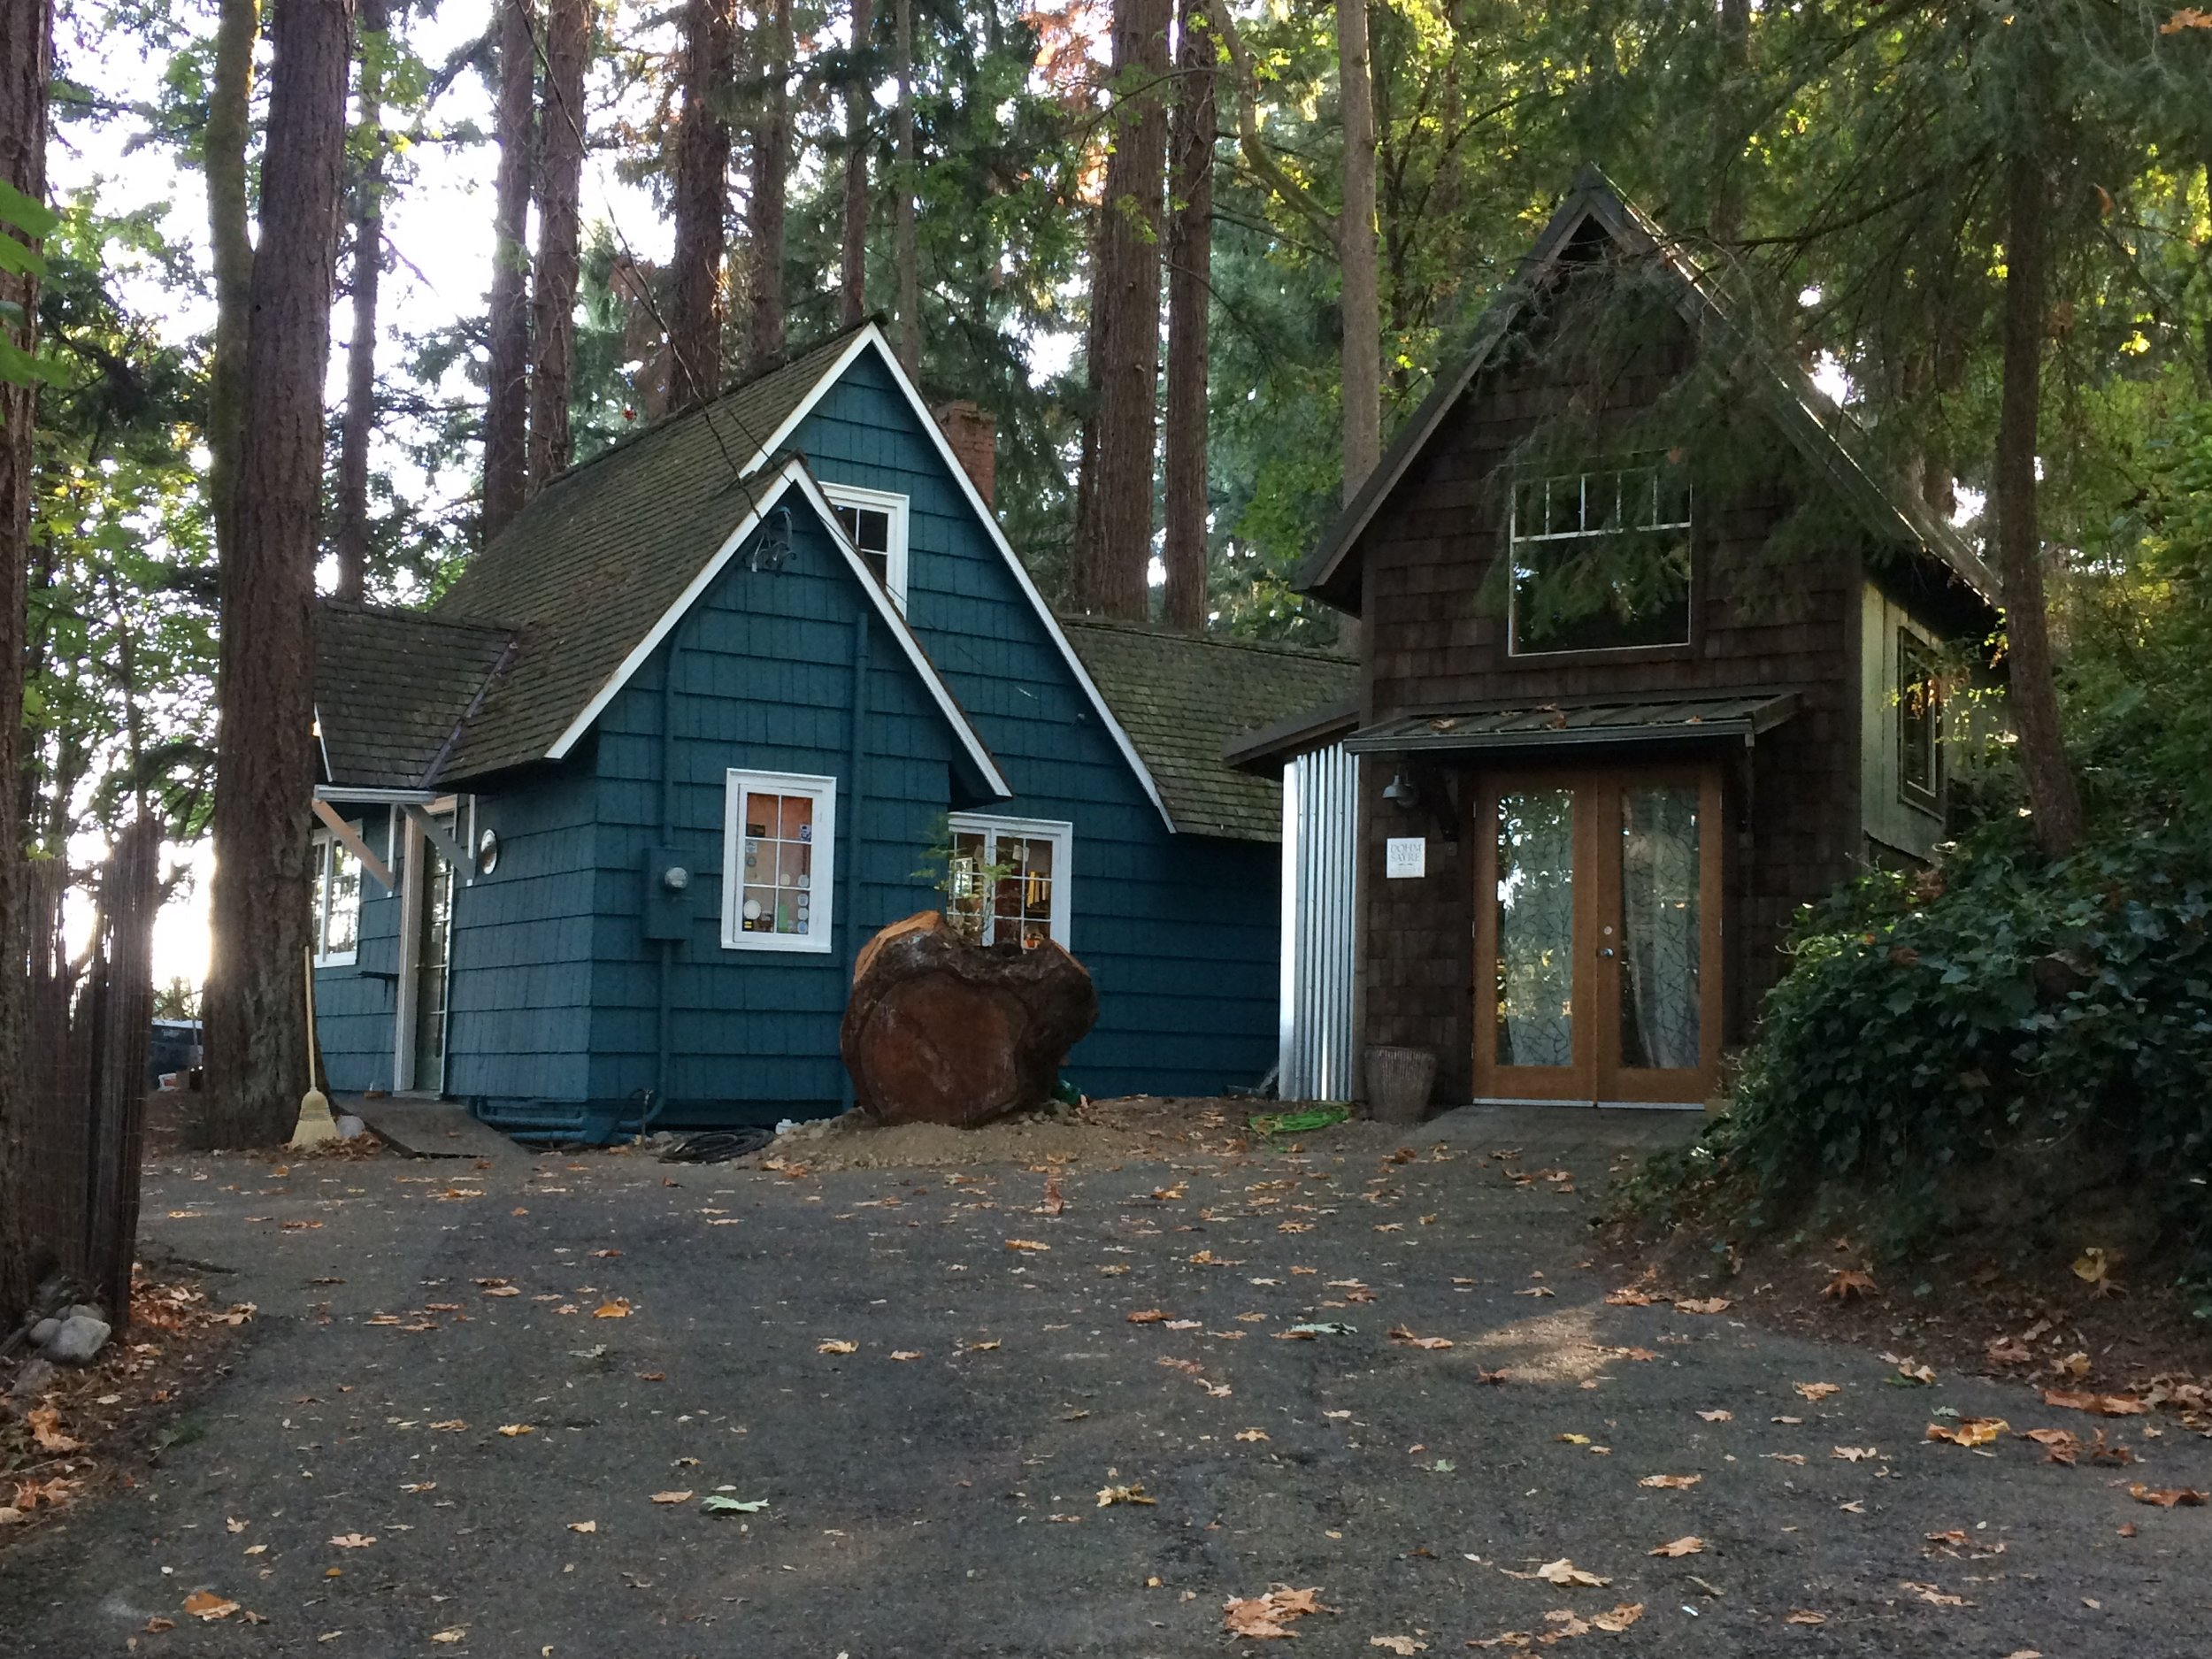 Our 1940 Cedar cabin under the trees, and overlooking Capitol Lake in Downtown Olympia, Washington.